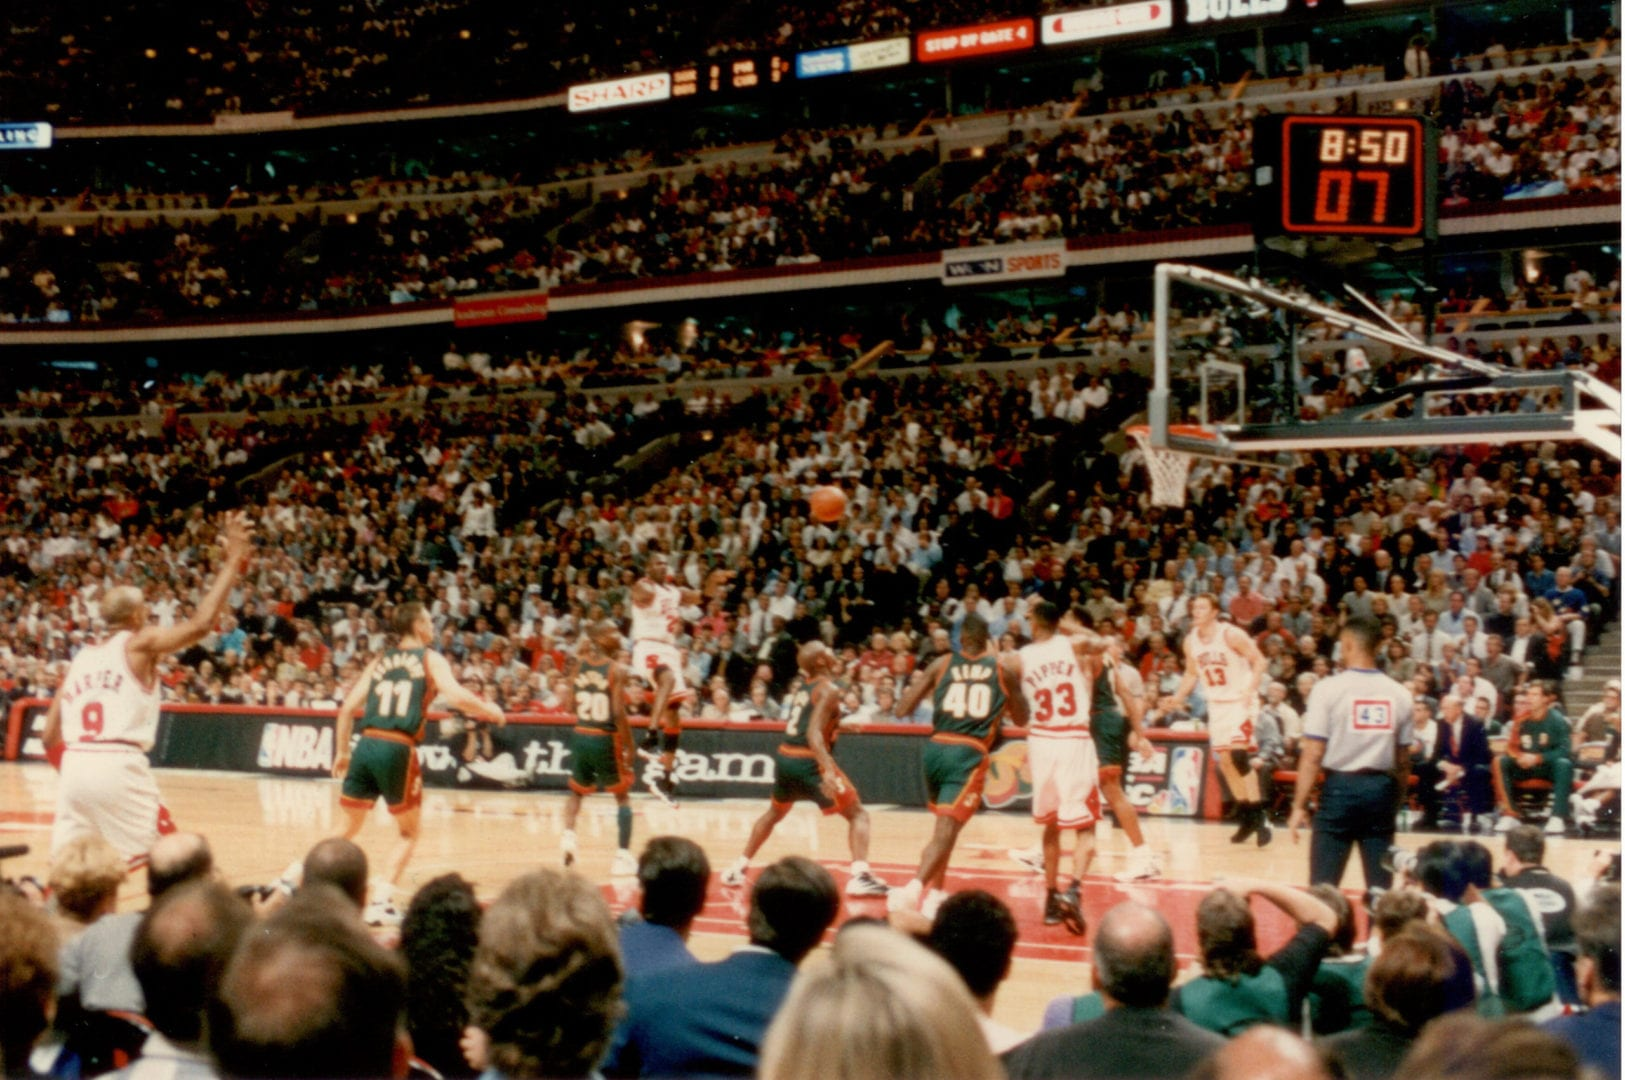 MJ passing the ball